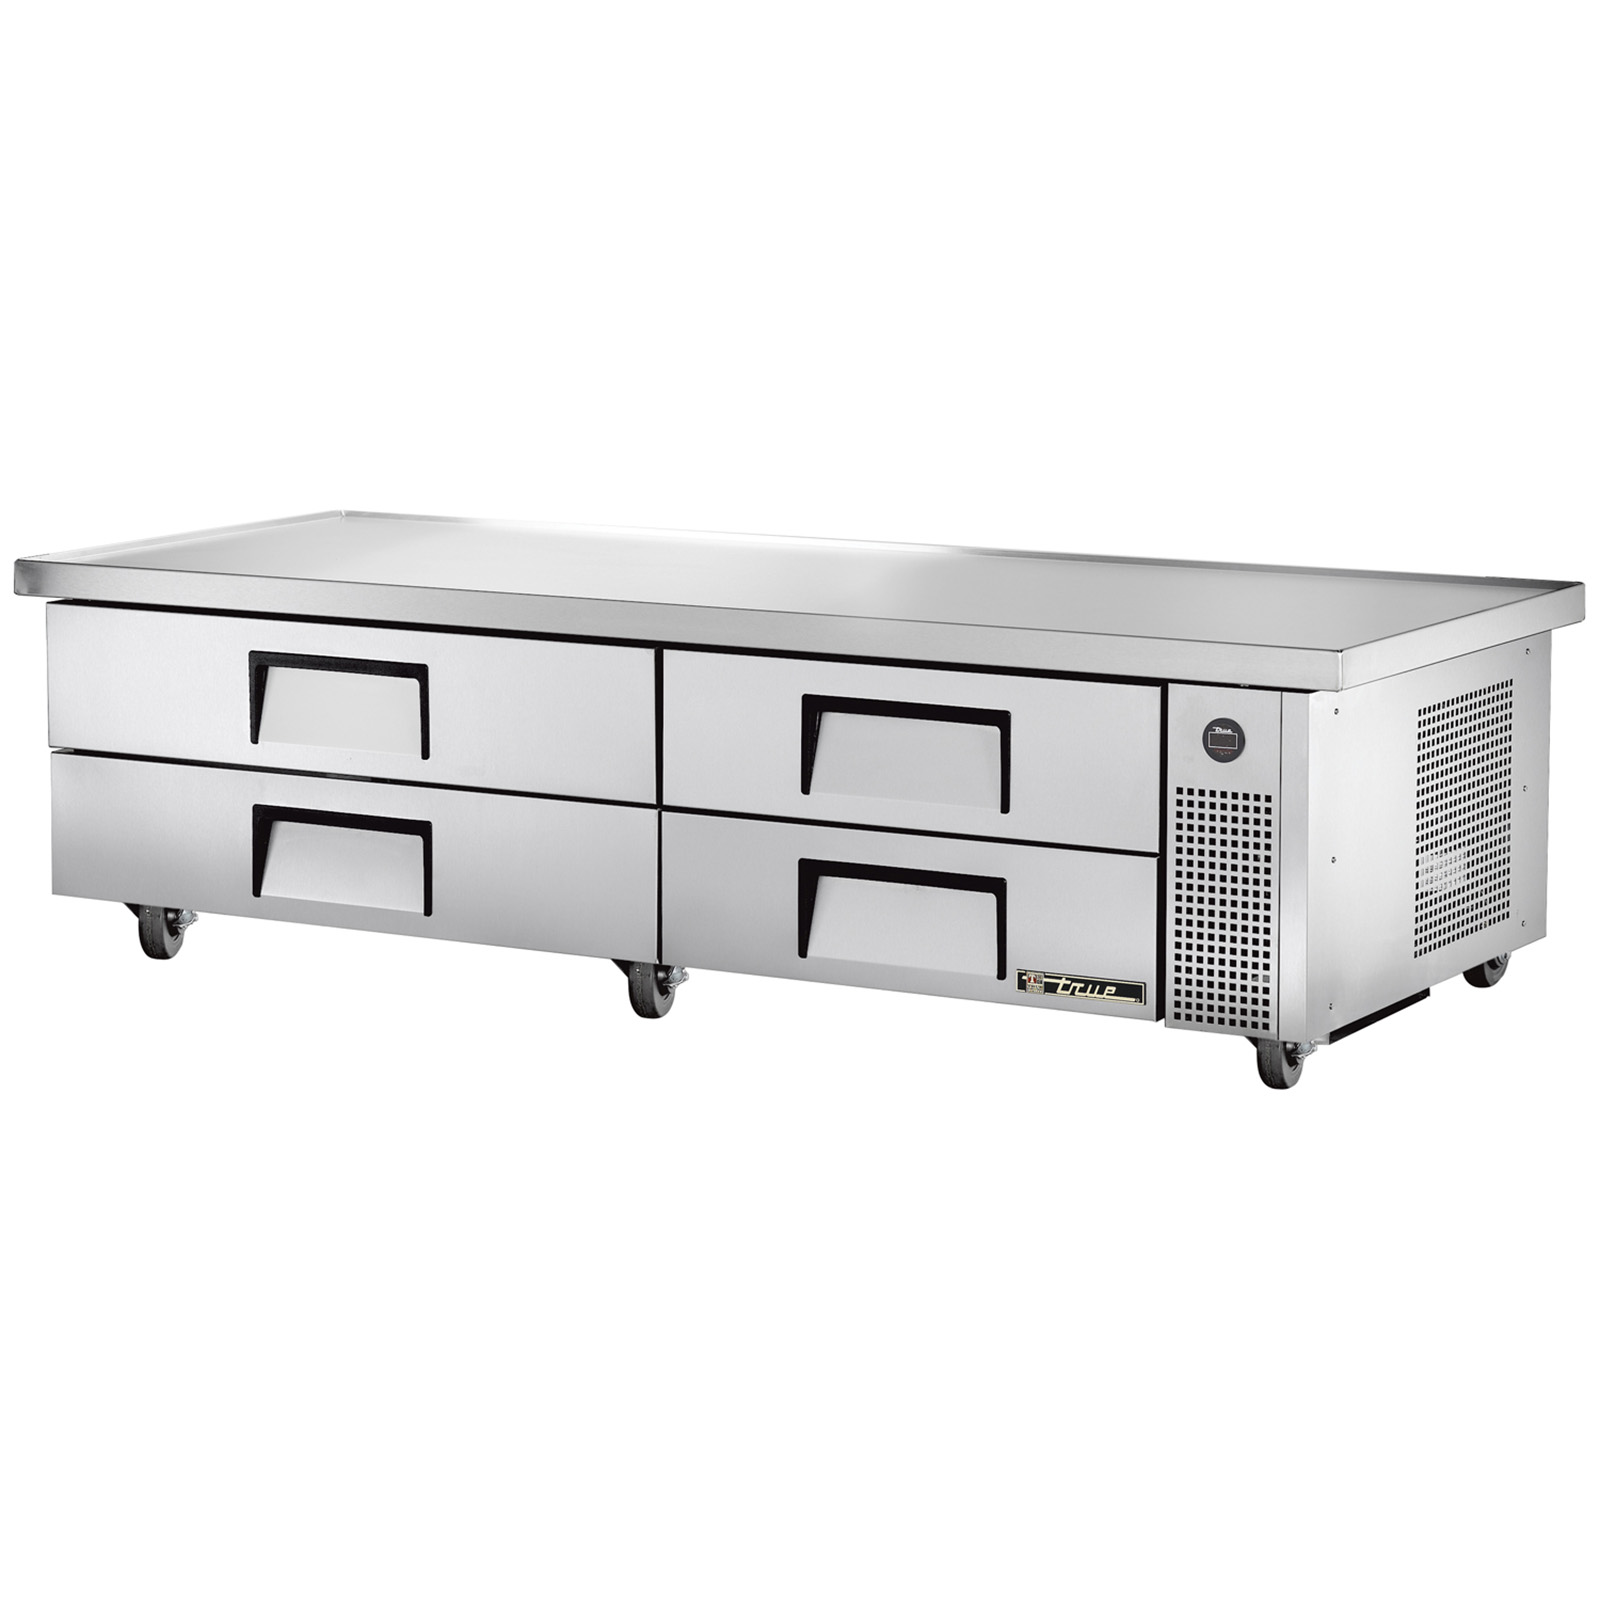 TRCB-82-86 True - Refrigerated Chef Base 82-3/8